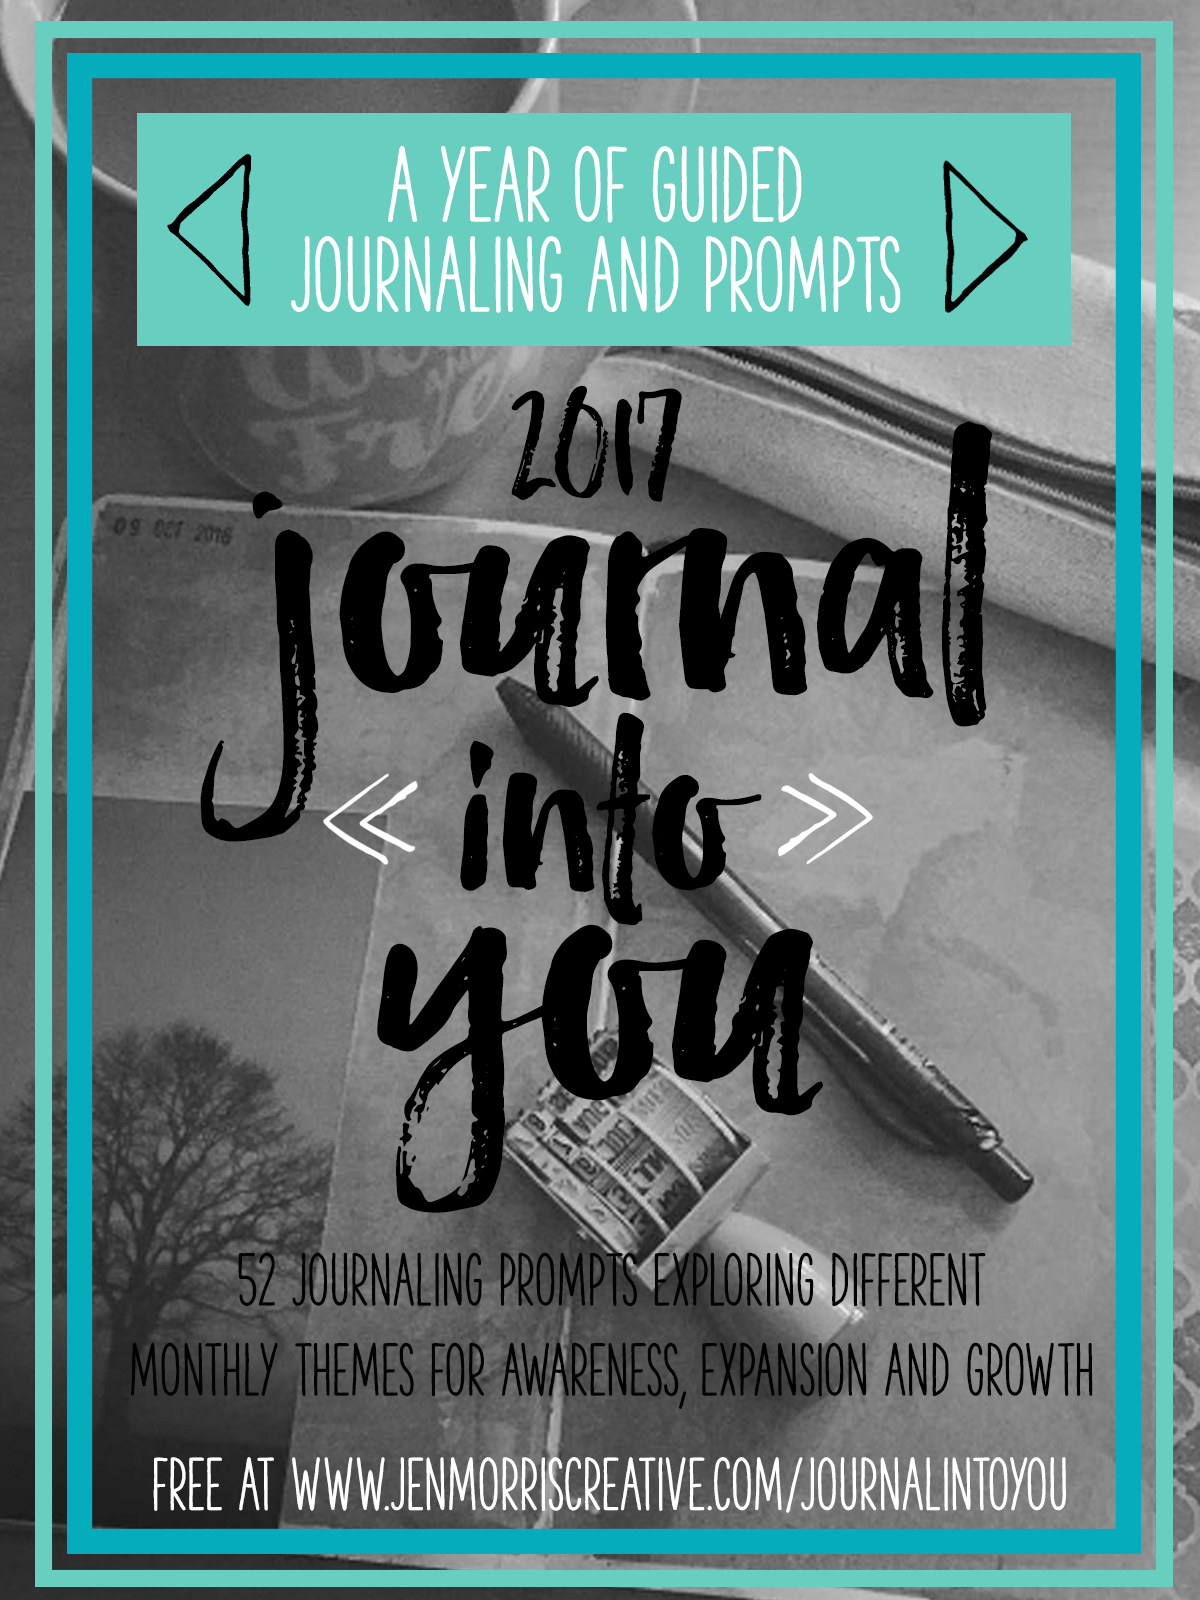 Scrapbook journaling ideas free - Free 2017 Themed Journaling Prompts Make This Coming Year One Of Growth Awareness And